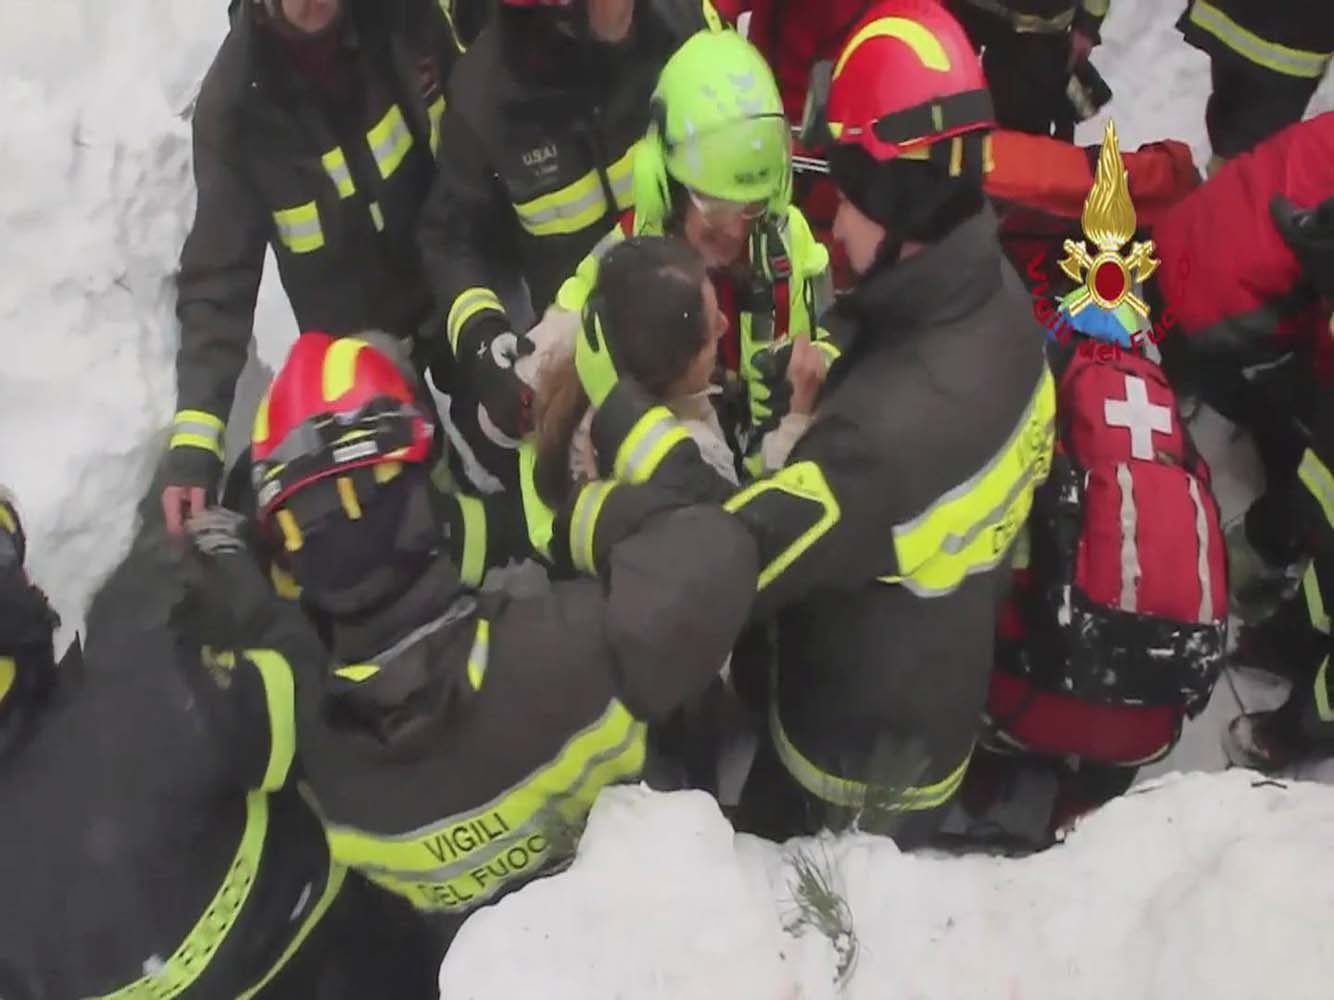 Firefighters rescue a survivor from Hotel Rigopiano in Farindola, central Italy, which was hit by an avalanche, in this handout picture released on January 20, 2017 by Italy's Fire Fighters. Vigili del Fuoco/Handout via REUTERS ATTENTION EDITORS - THIS IMAGE WAS PROVIDED BY A THIRD PARTY. EDITORIAL USE ONLY.